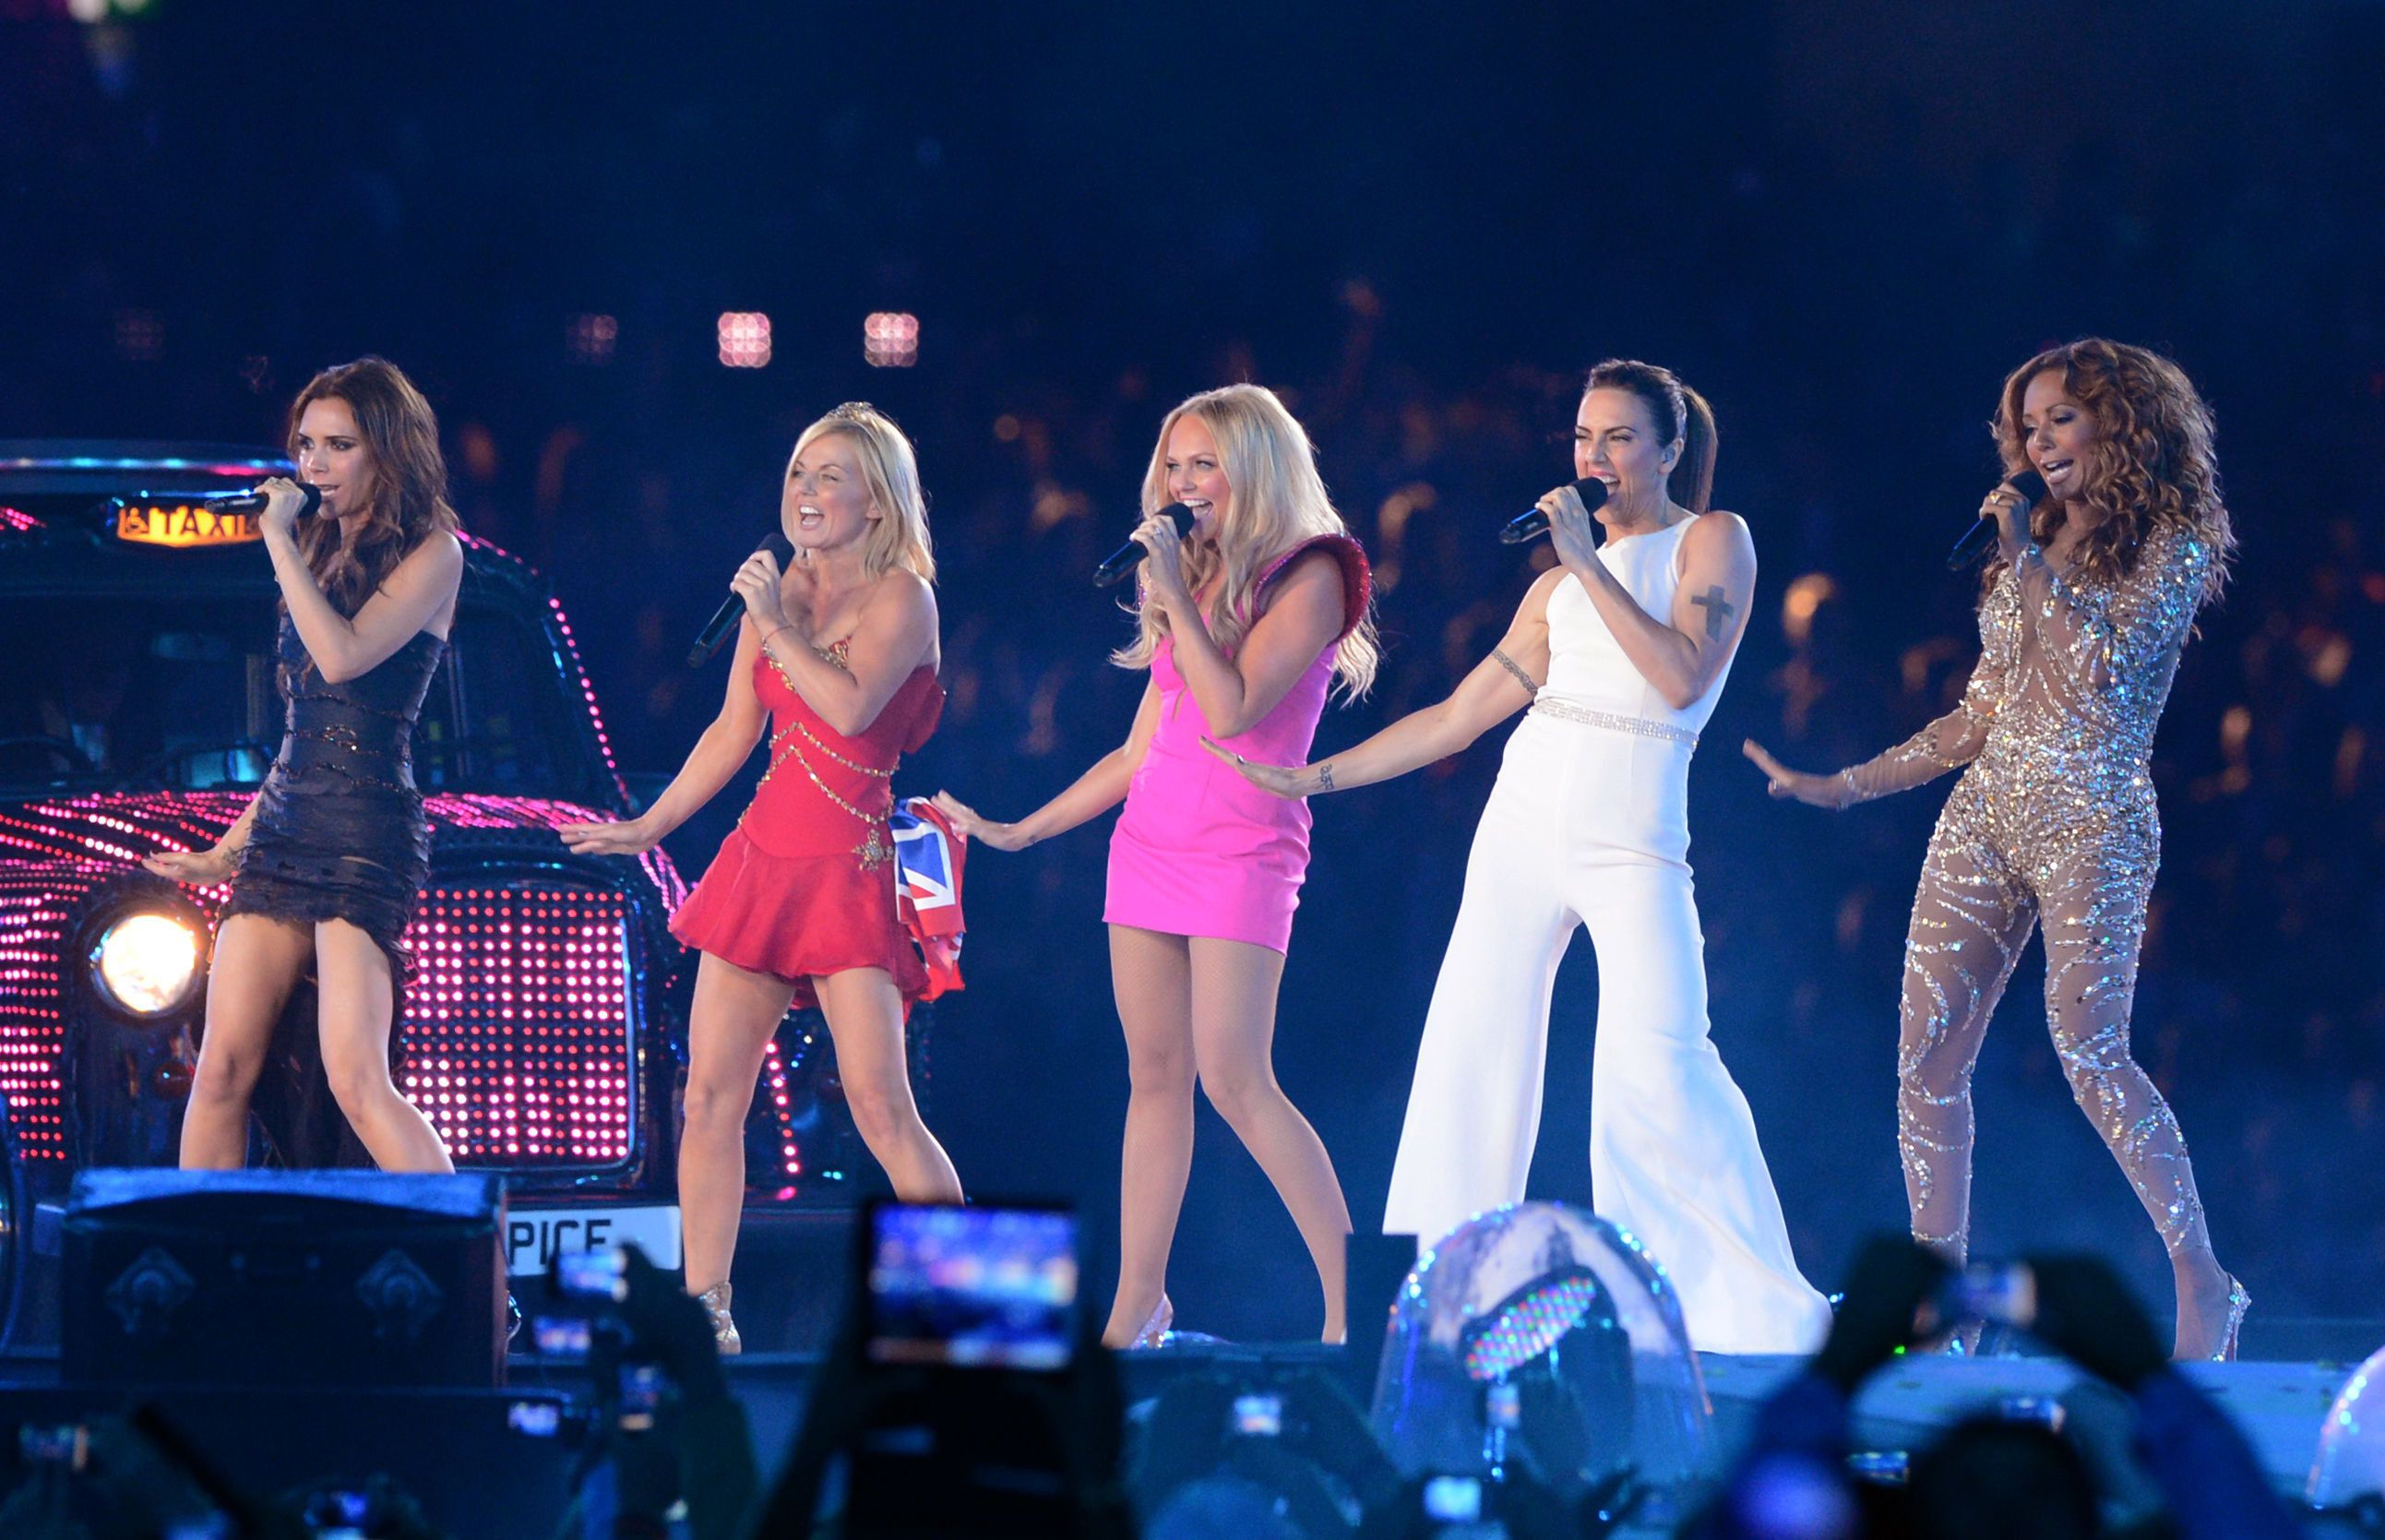 Spice Girls Confirm They're Getting Back Together